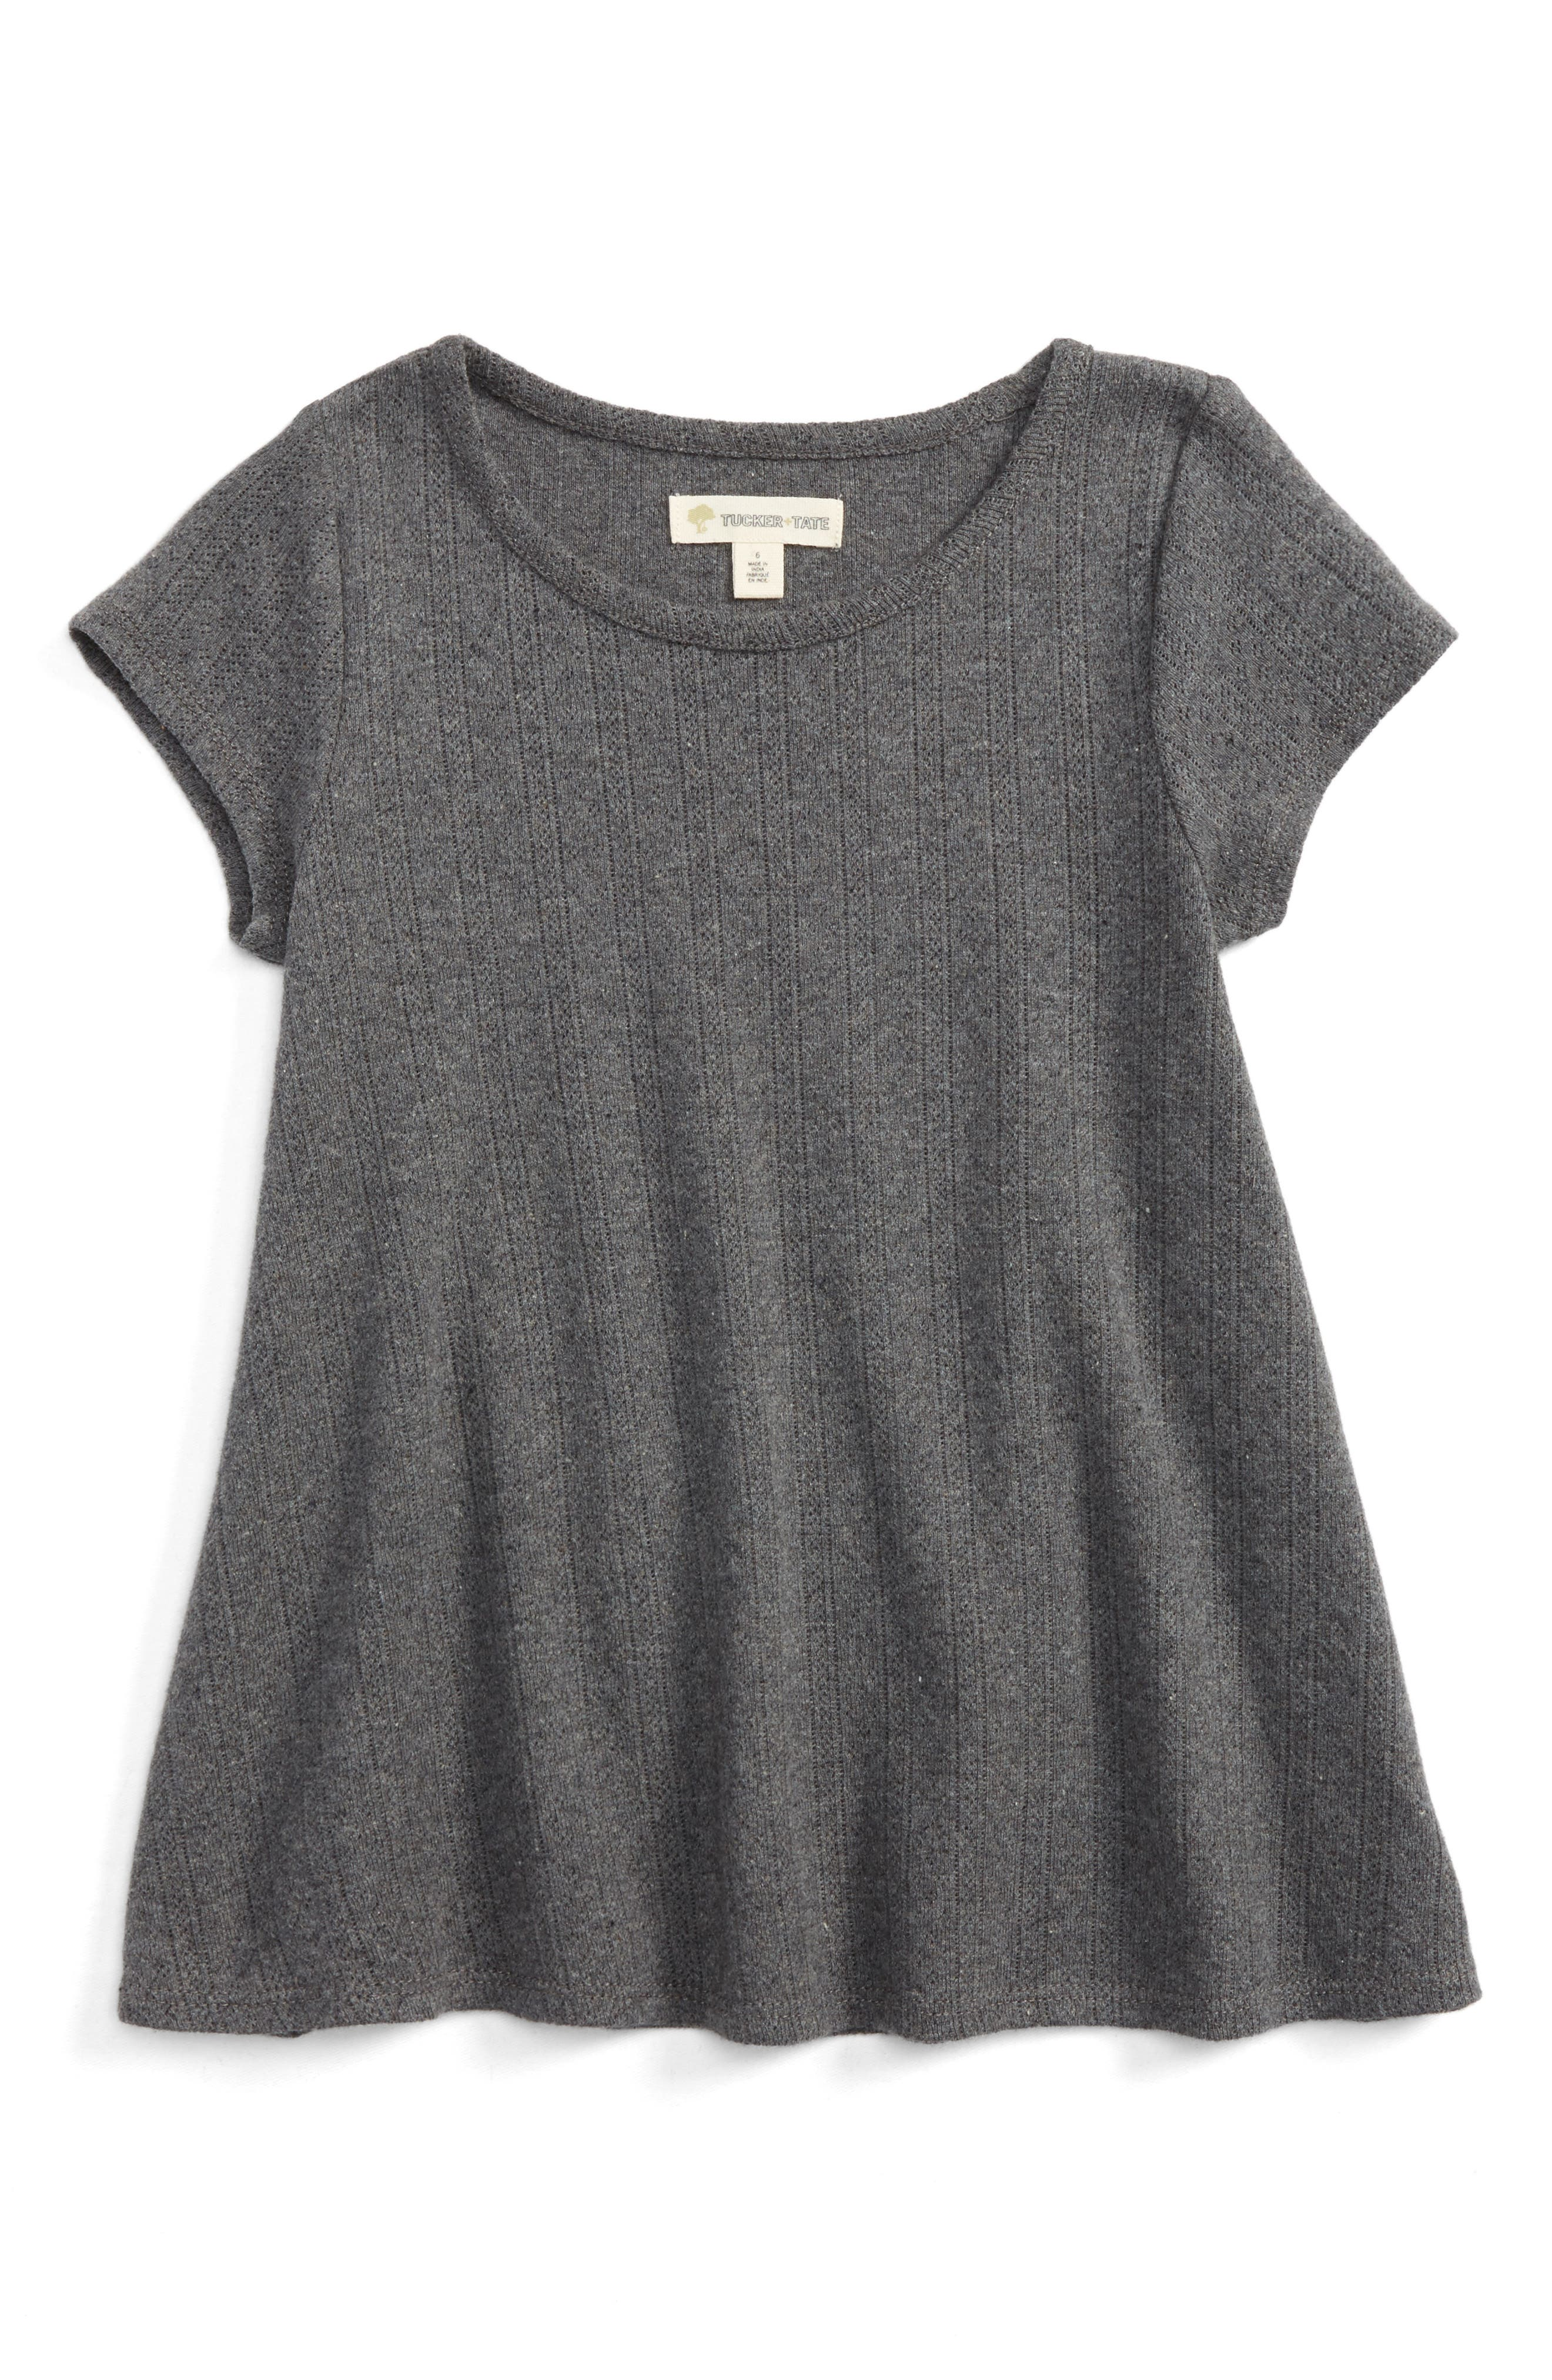 Pointelle Tee,                         Main,                         color, Grey Charcoal Heather